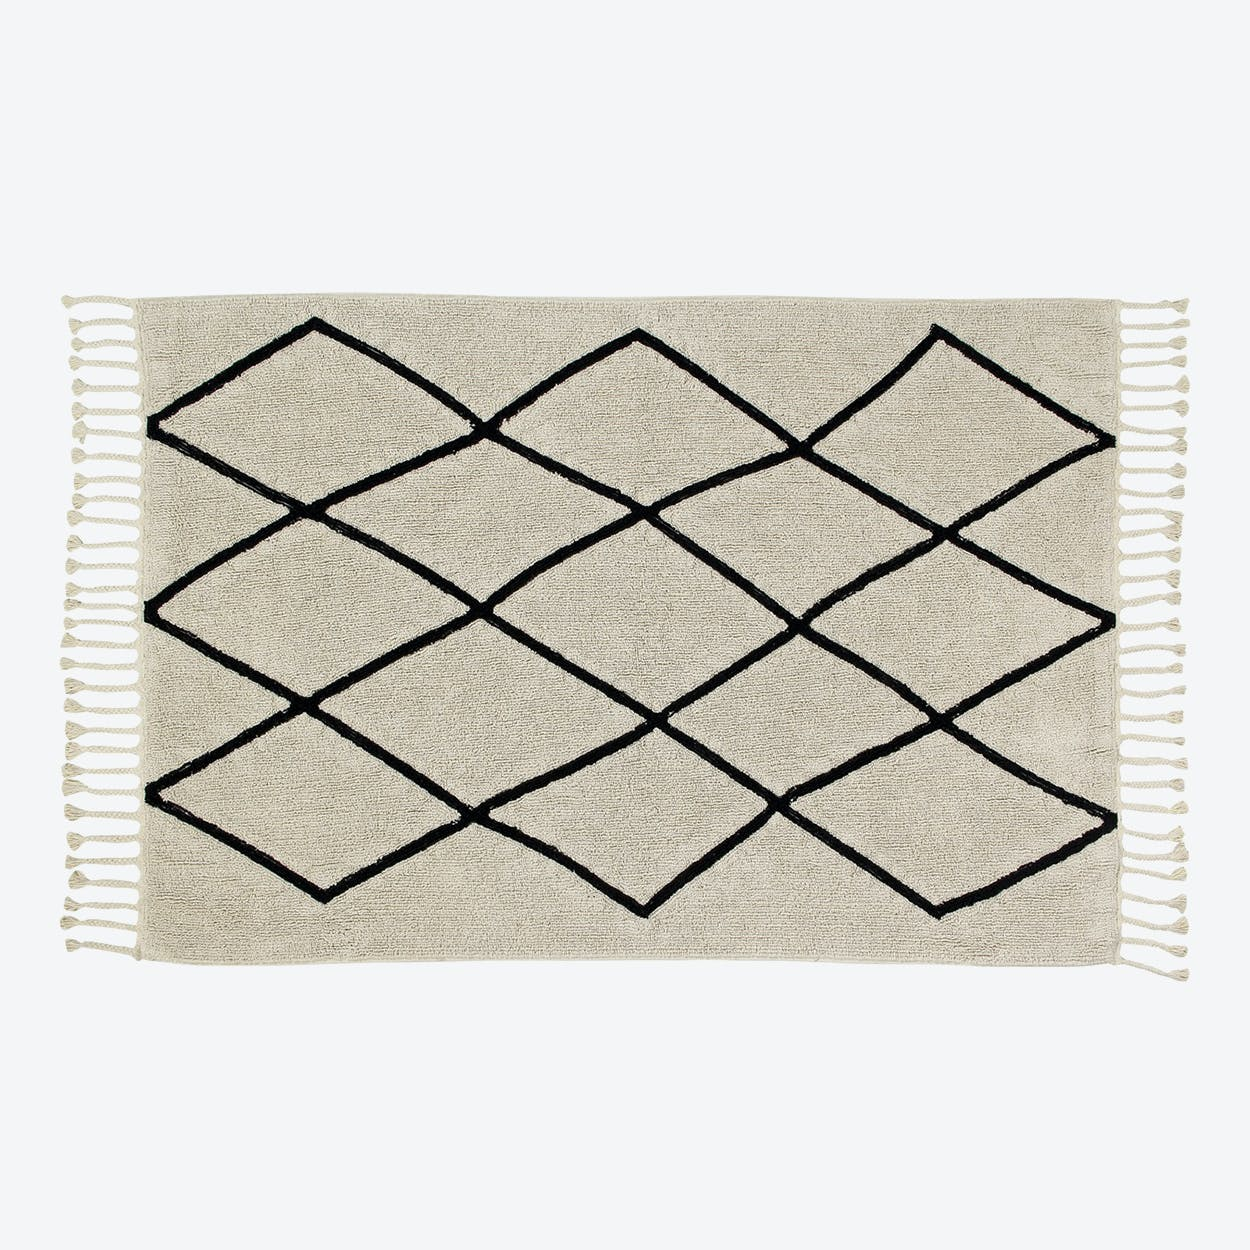 Washable Rug Black&White Bereber Beige